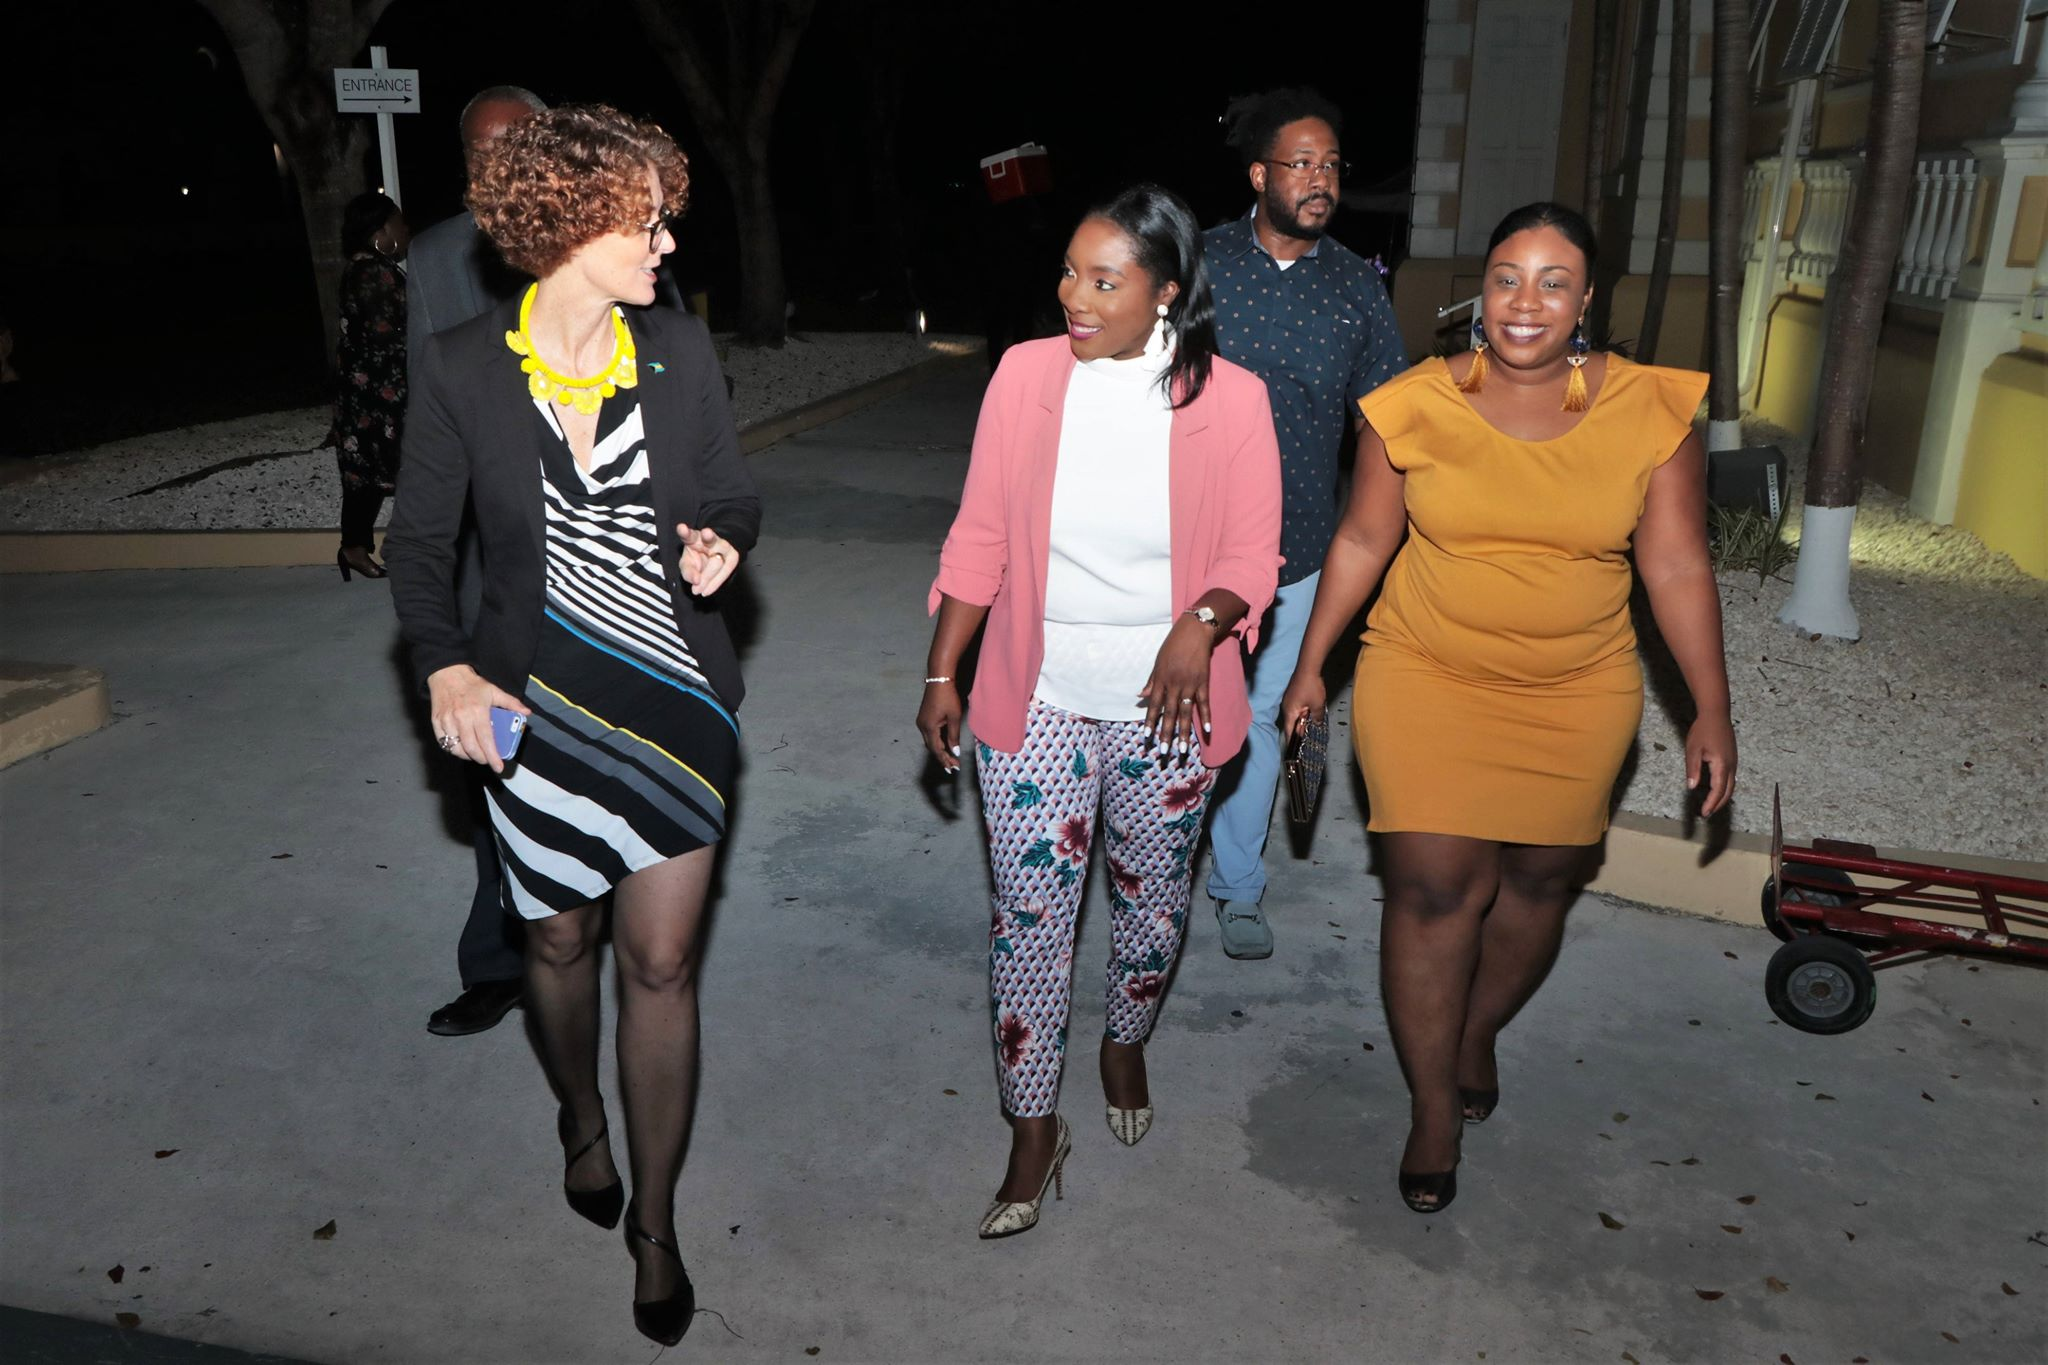 Executive Director of NAGB, Amanda Coulson with Minister of Culture Hon. Lanisha Rolle and Director of Culture, Rowena Poitier-Sutherland. Images courtesy BIS and Eric Rose.